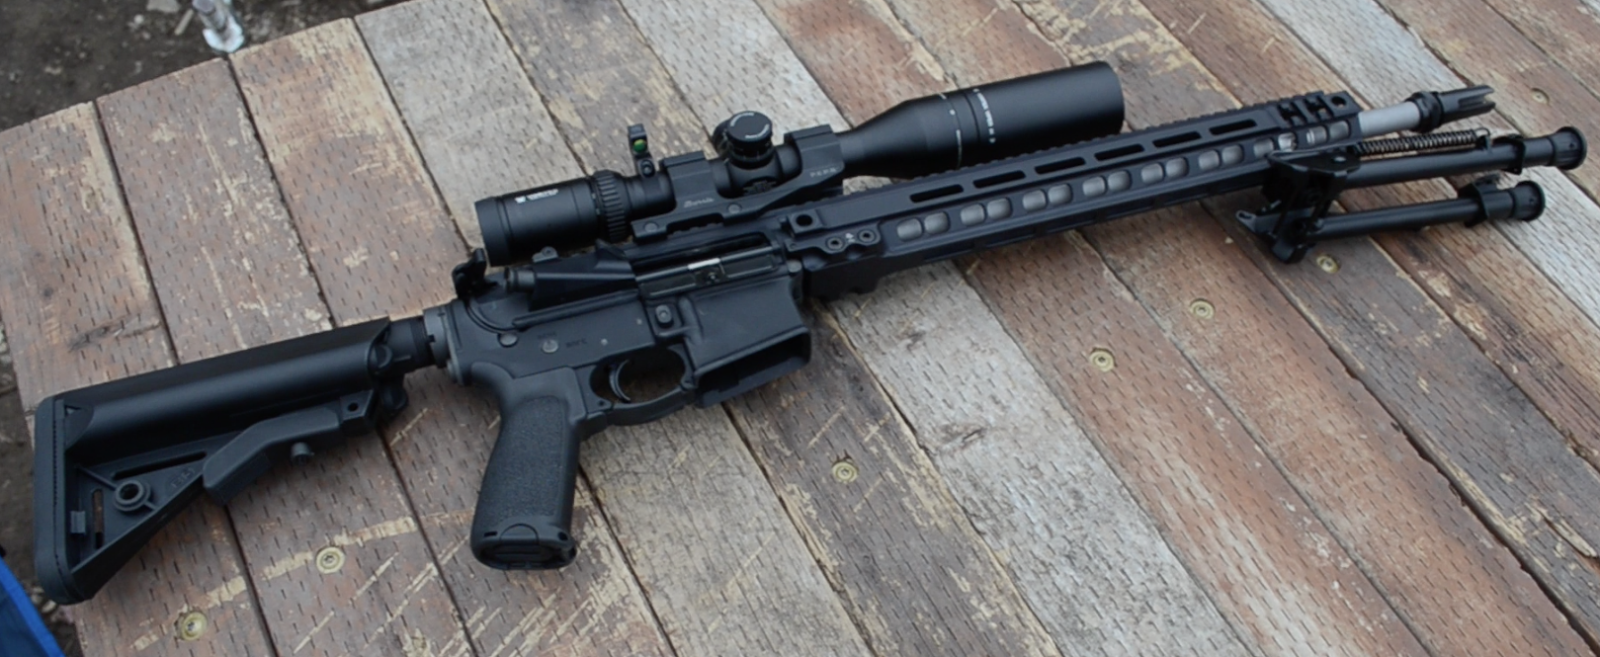 MK12 MOD Awesome SPR Rifle